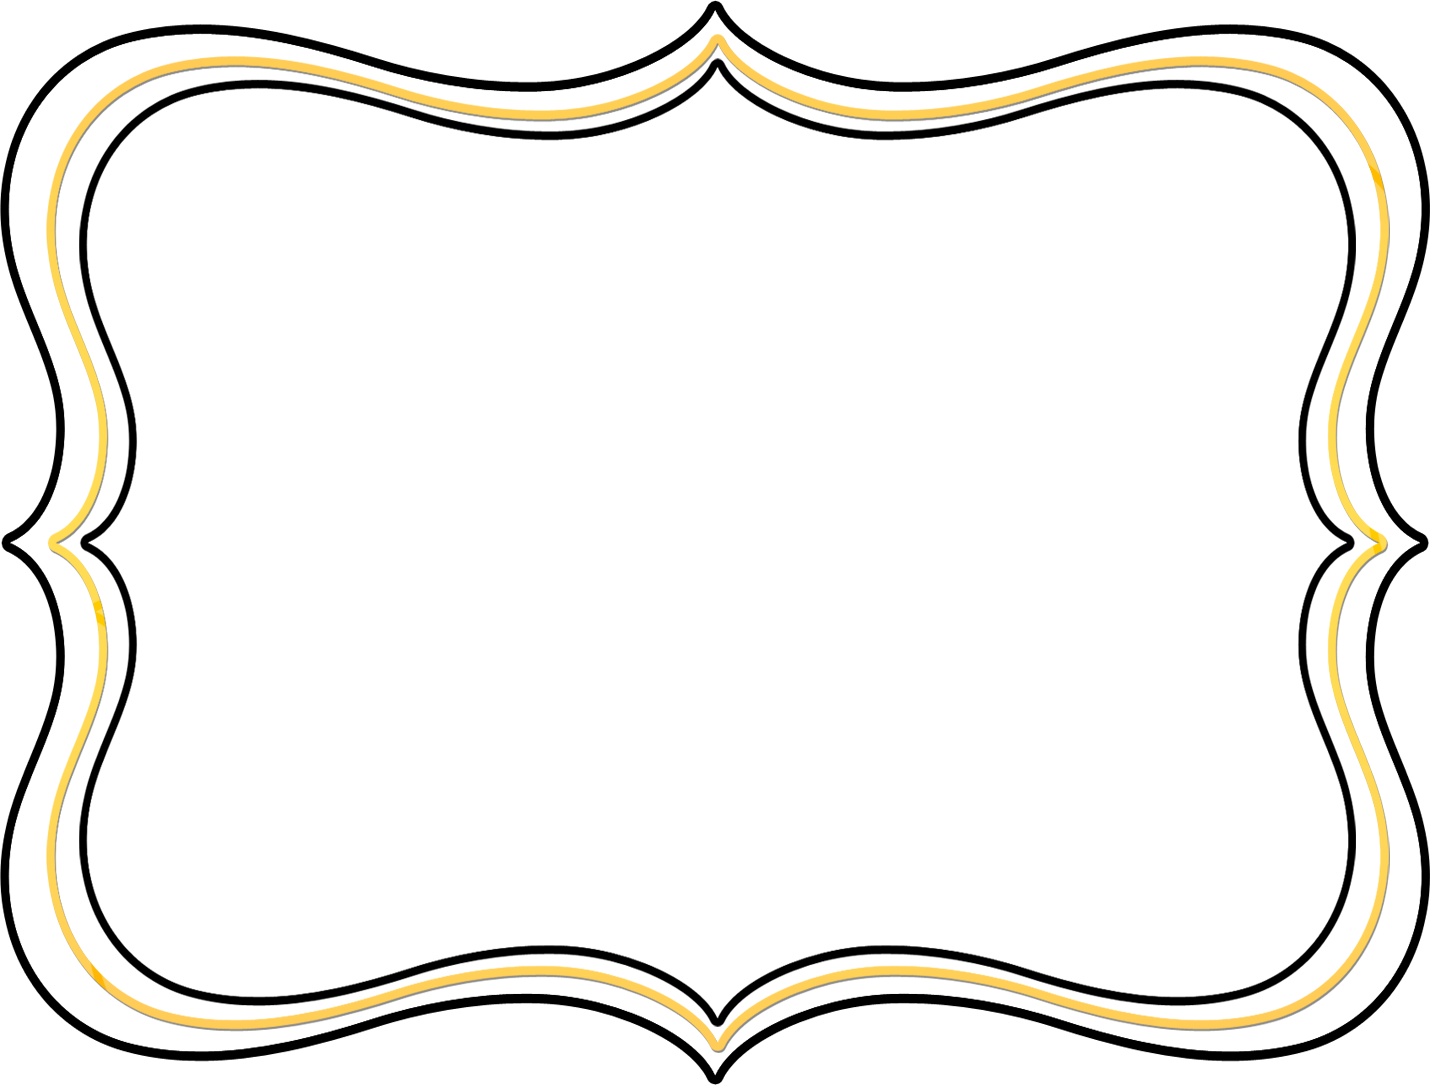 Scroll frame png. Border clipart